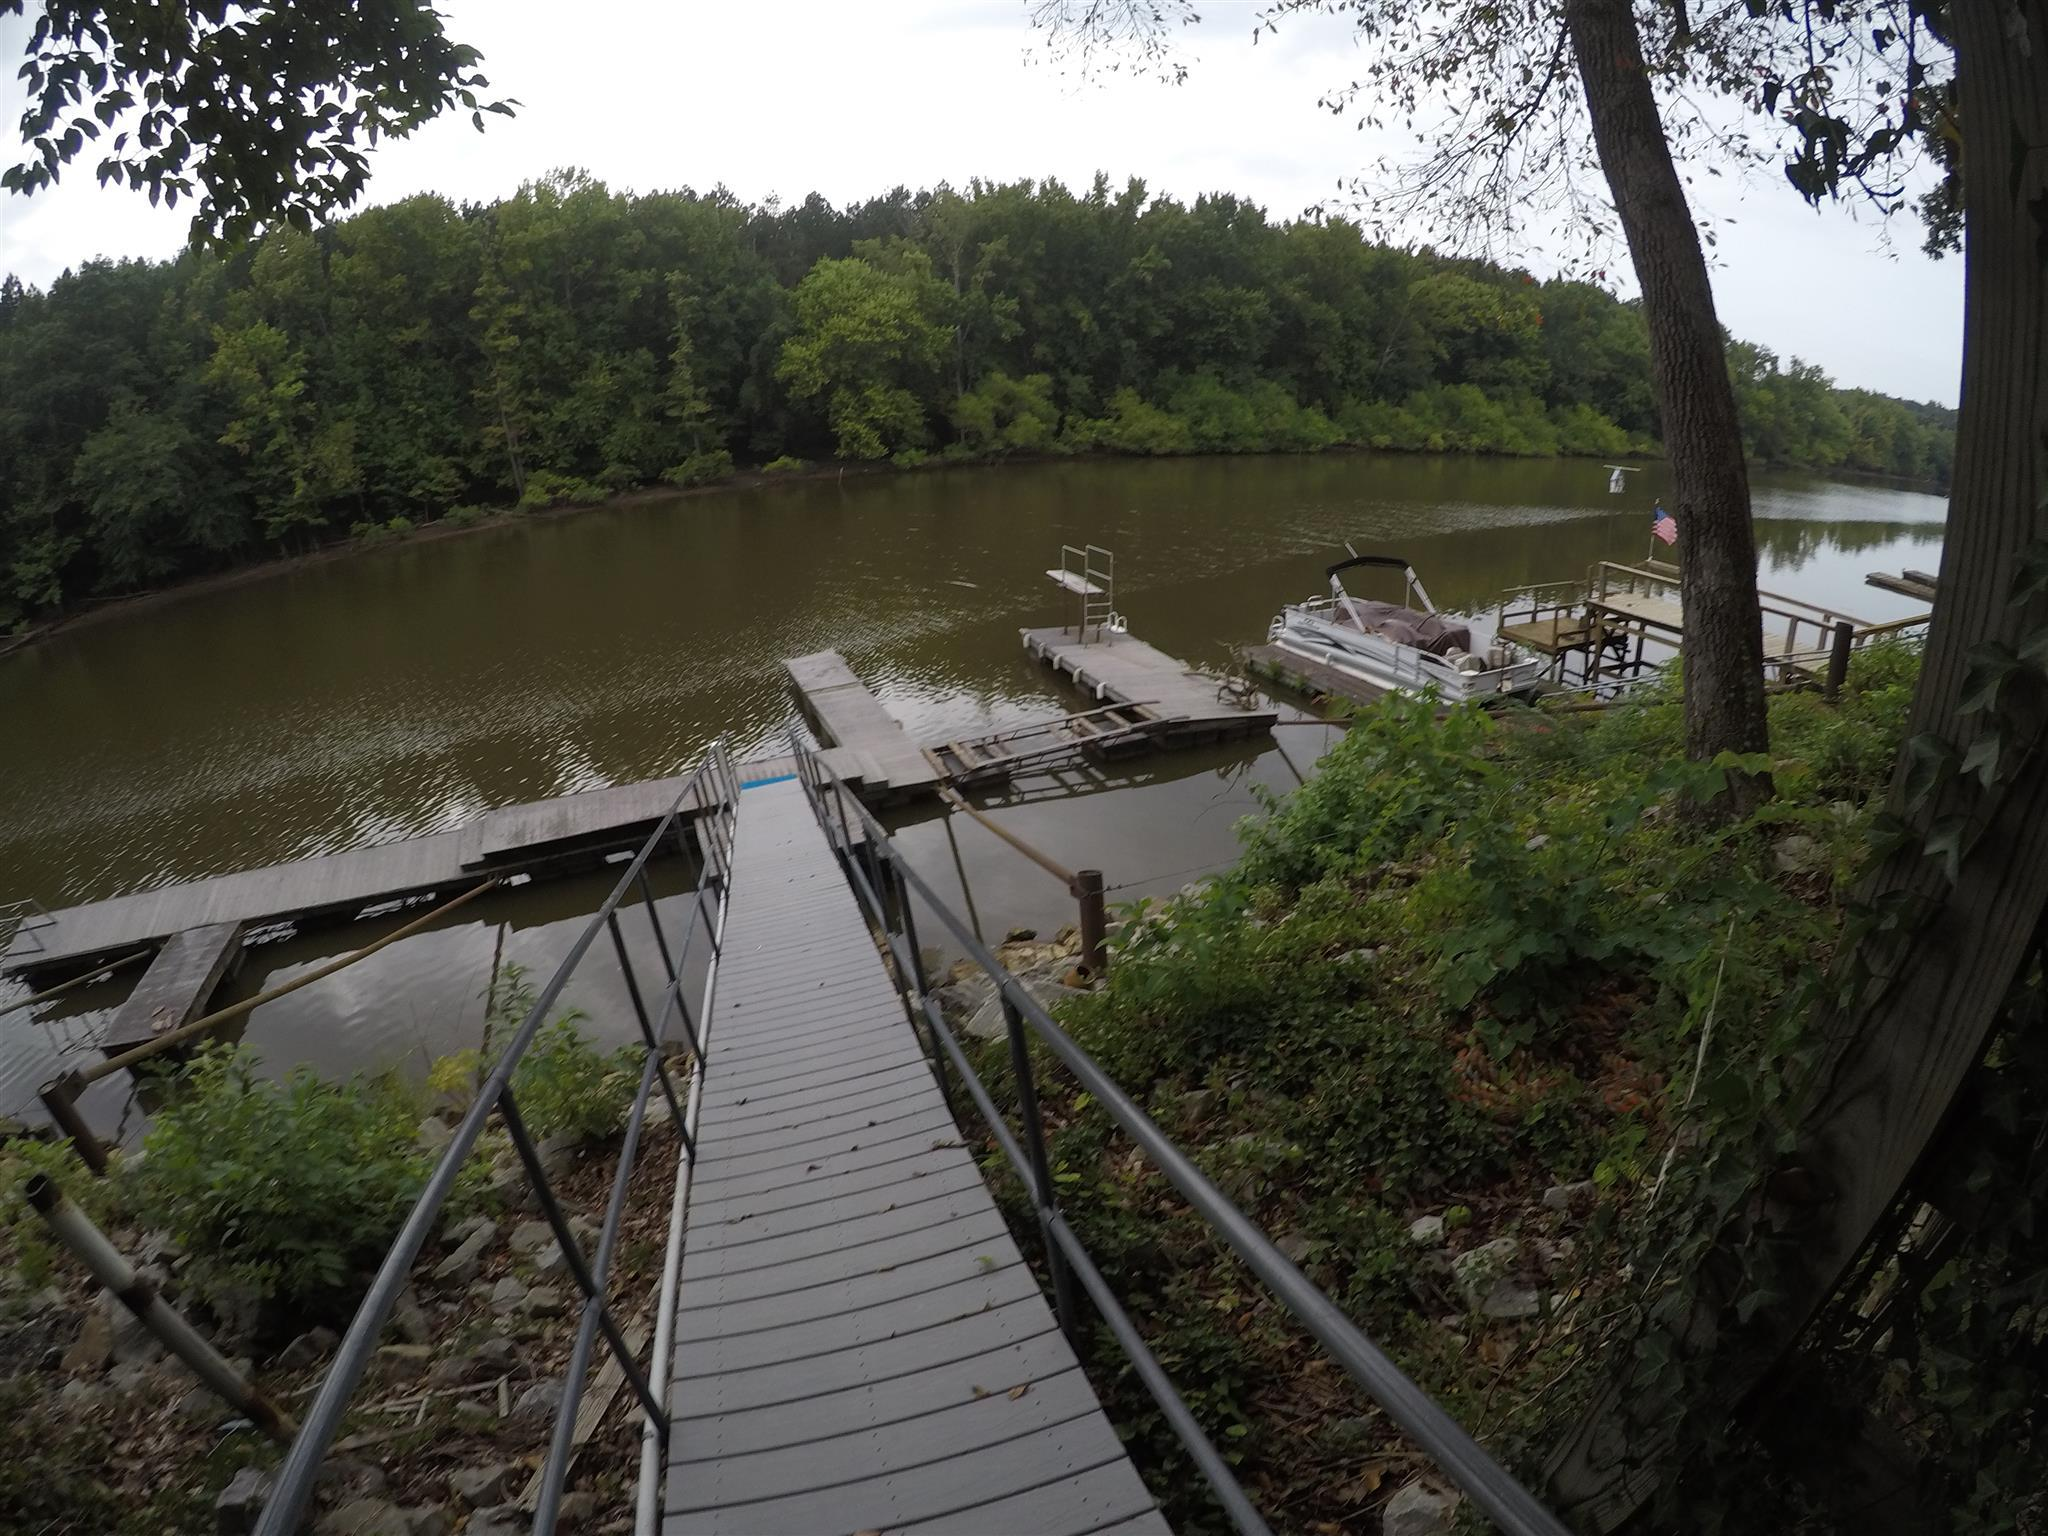 783 Lost Creek Boat Dock Rd, Decaturville, TN 38329 - Decaturville, TN real estate listing